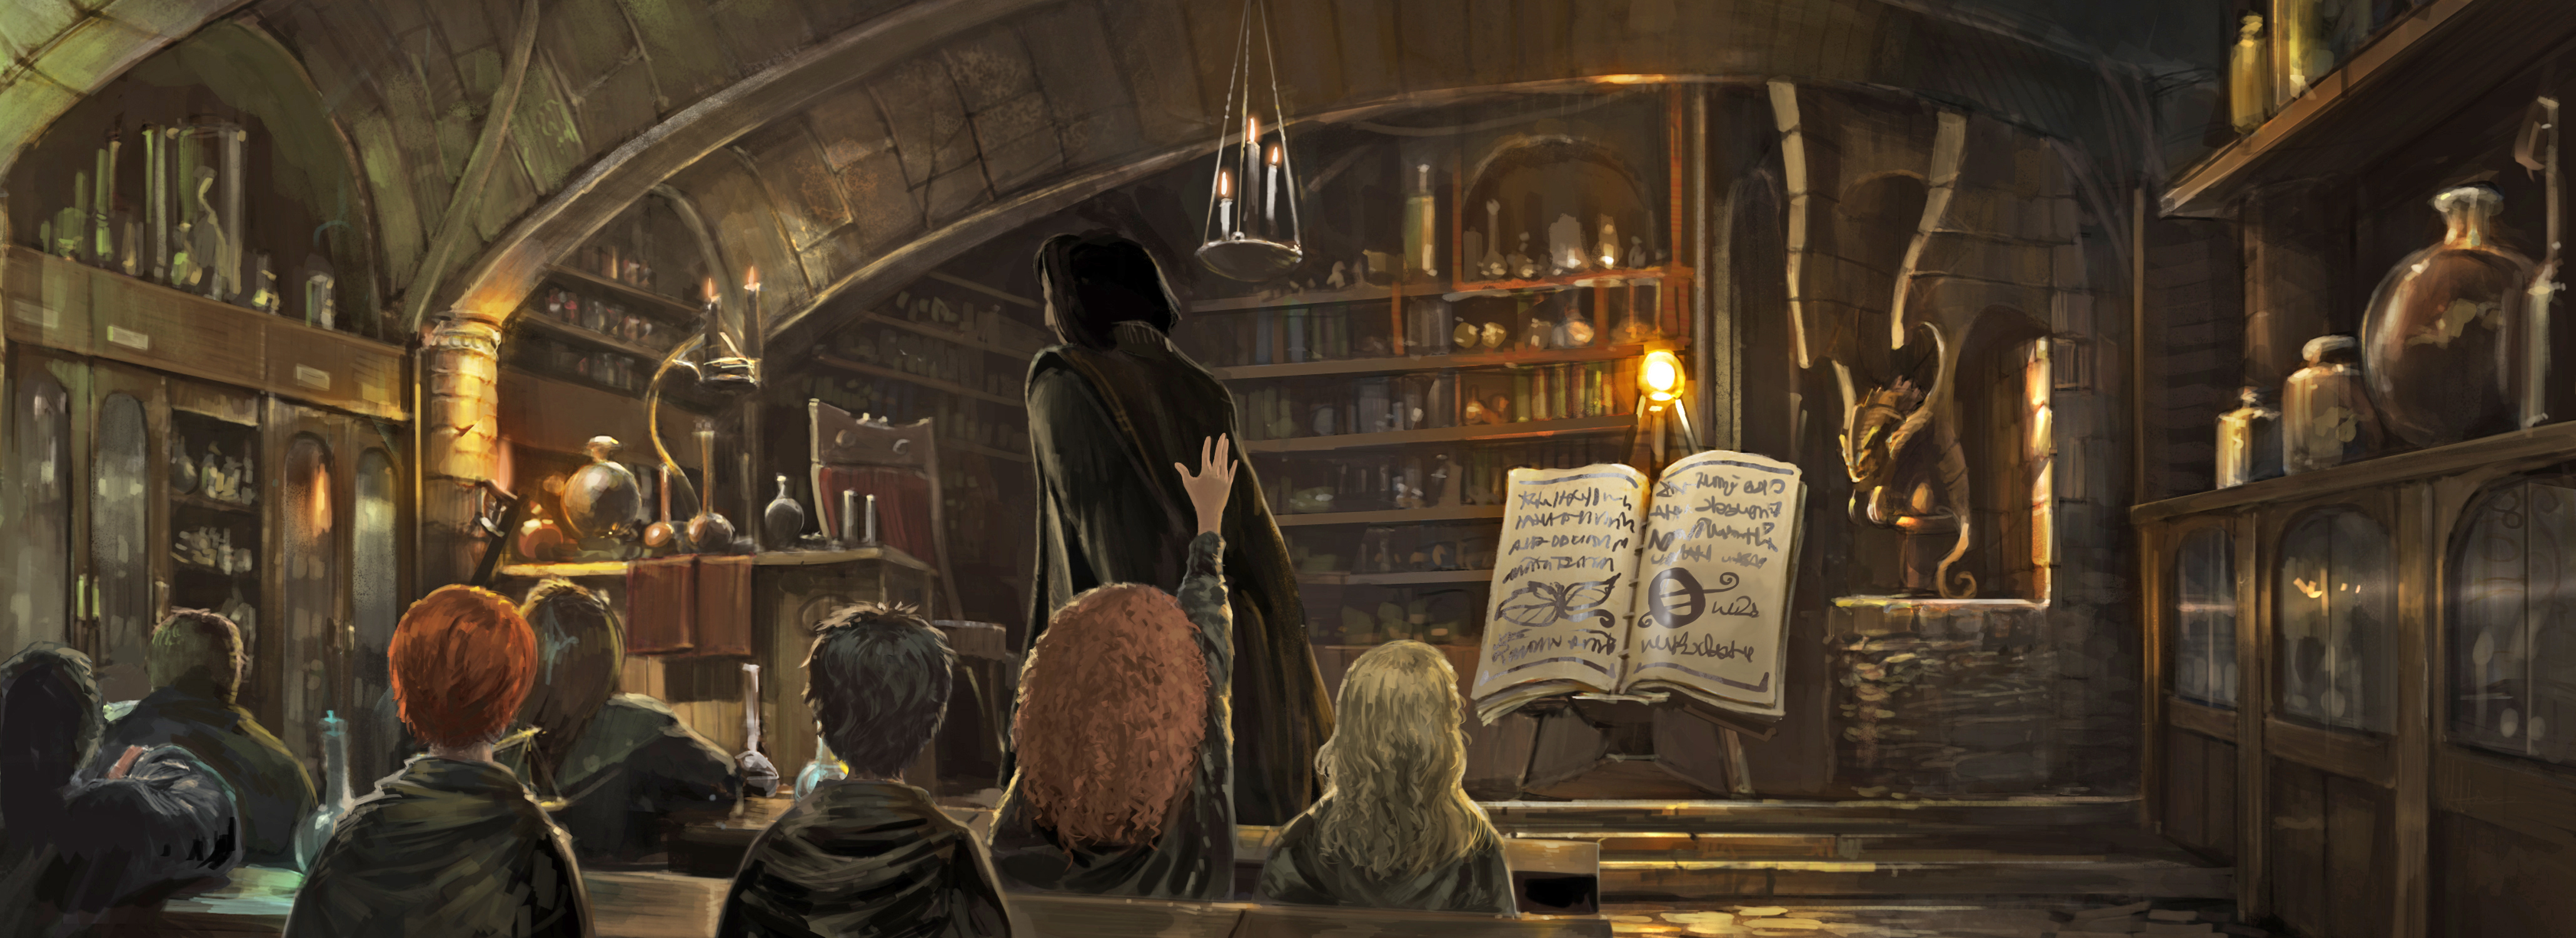 Snape teaching potions from the Philosopher's Stone